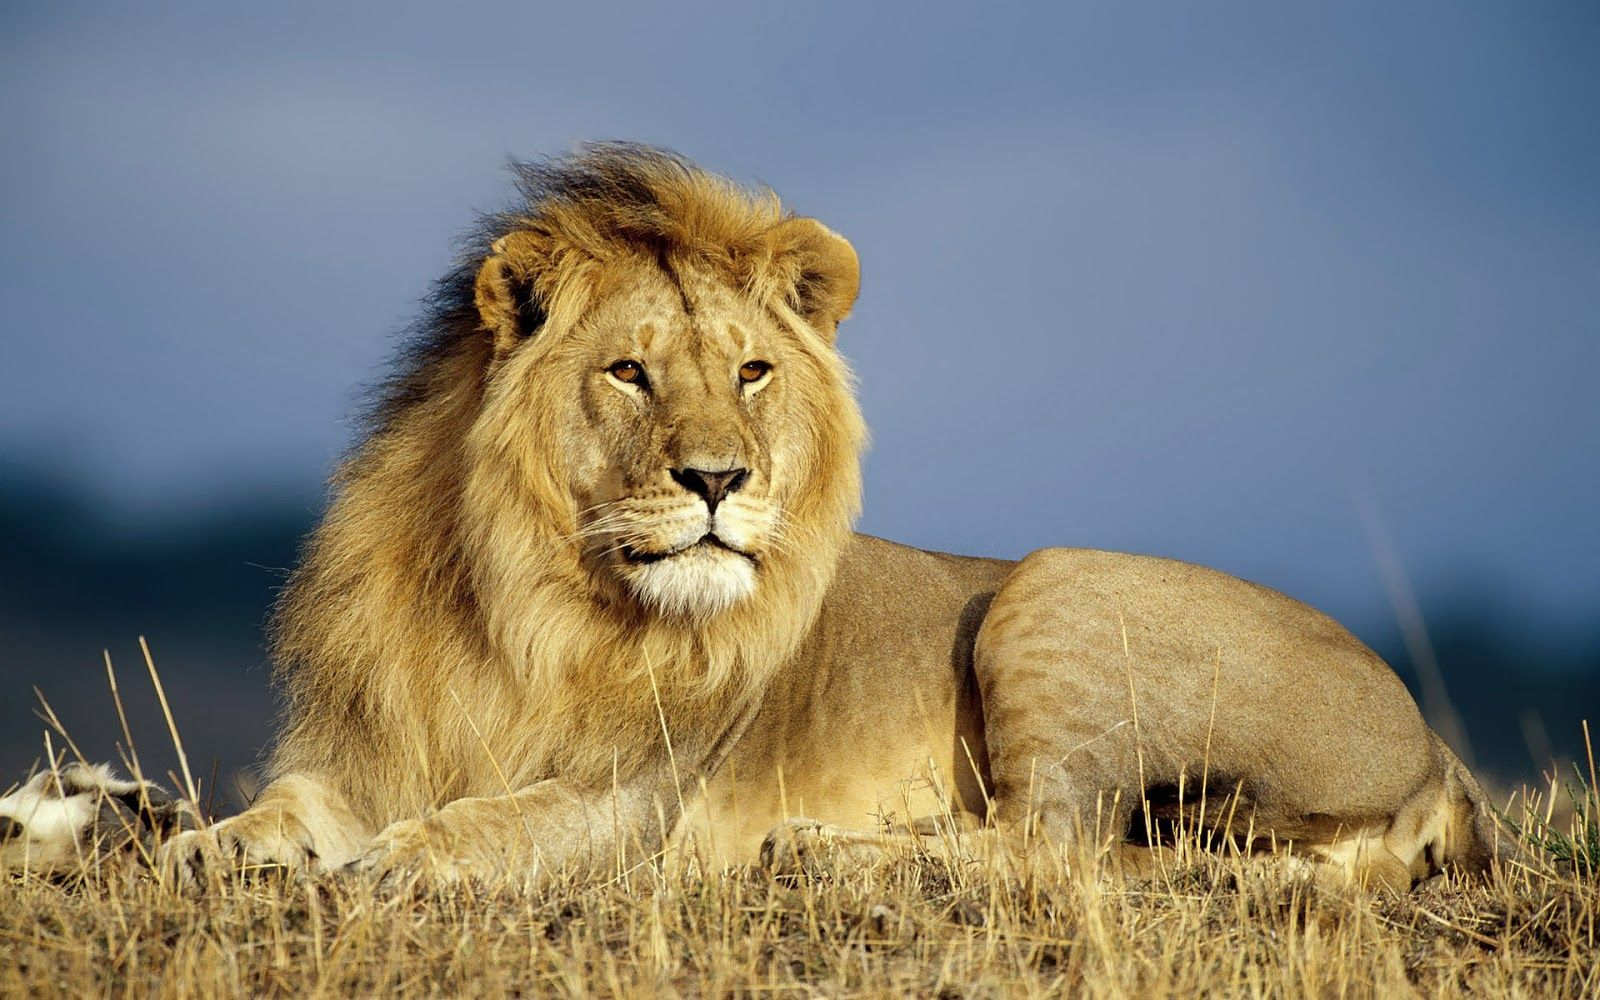 HD Lions Wallpapers and Photos HD Animals Wallpapers Black lion 1600x1000